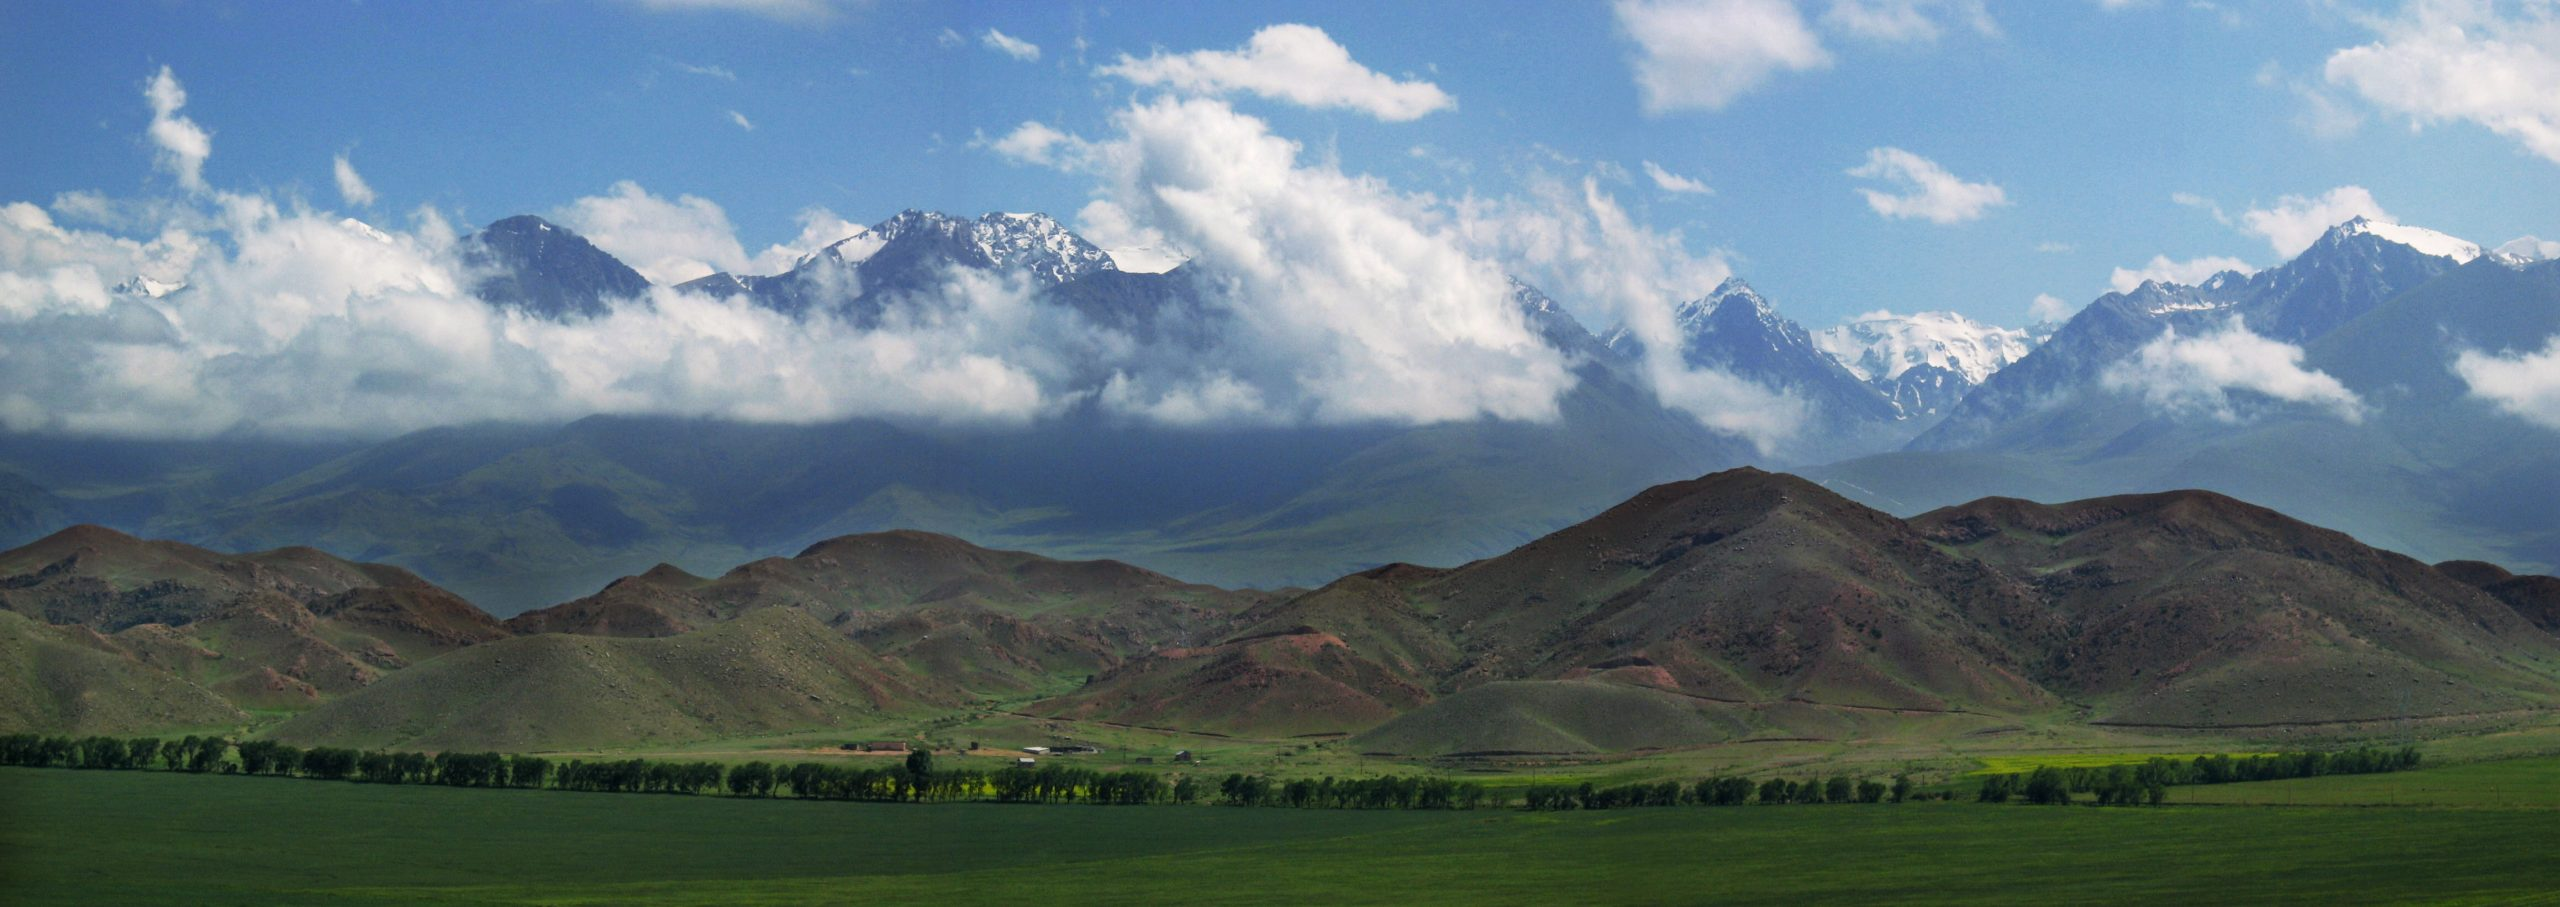 Sarychat-Eеrtash State Reserve, Kyrgyzstan